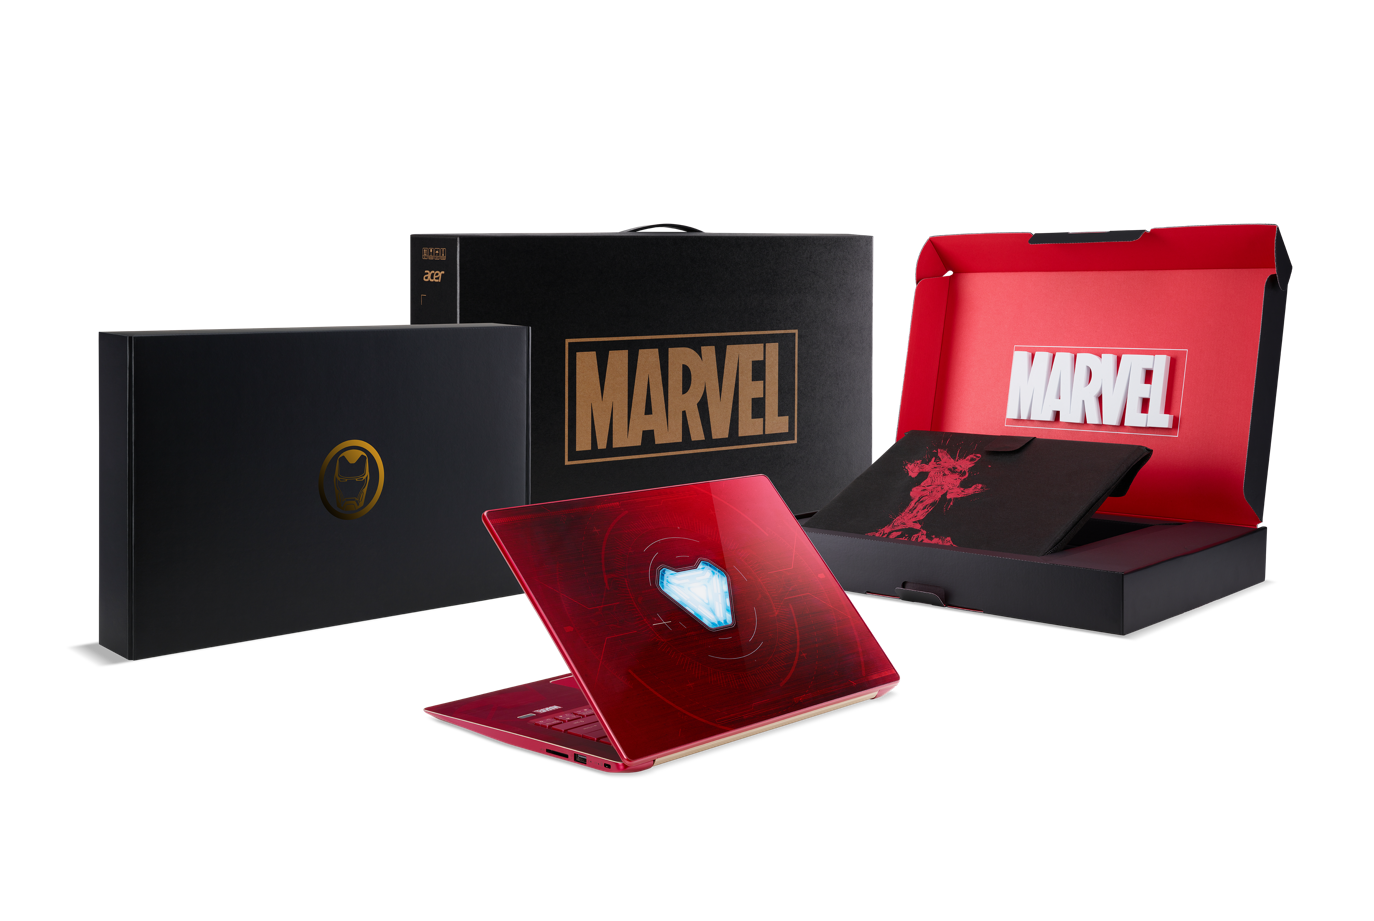 acer infinity war notebook swift 3 iron man edition